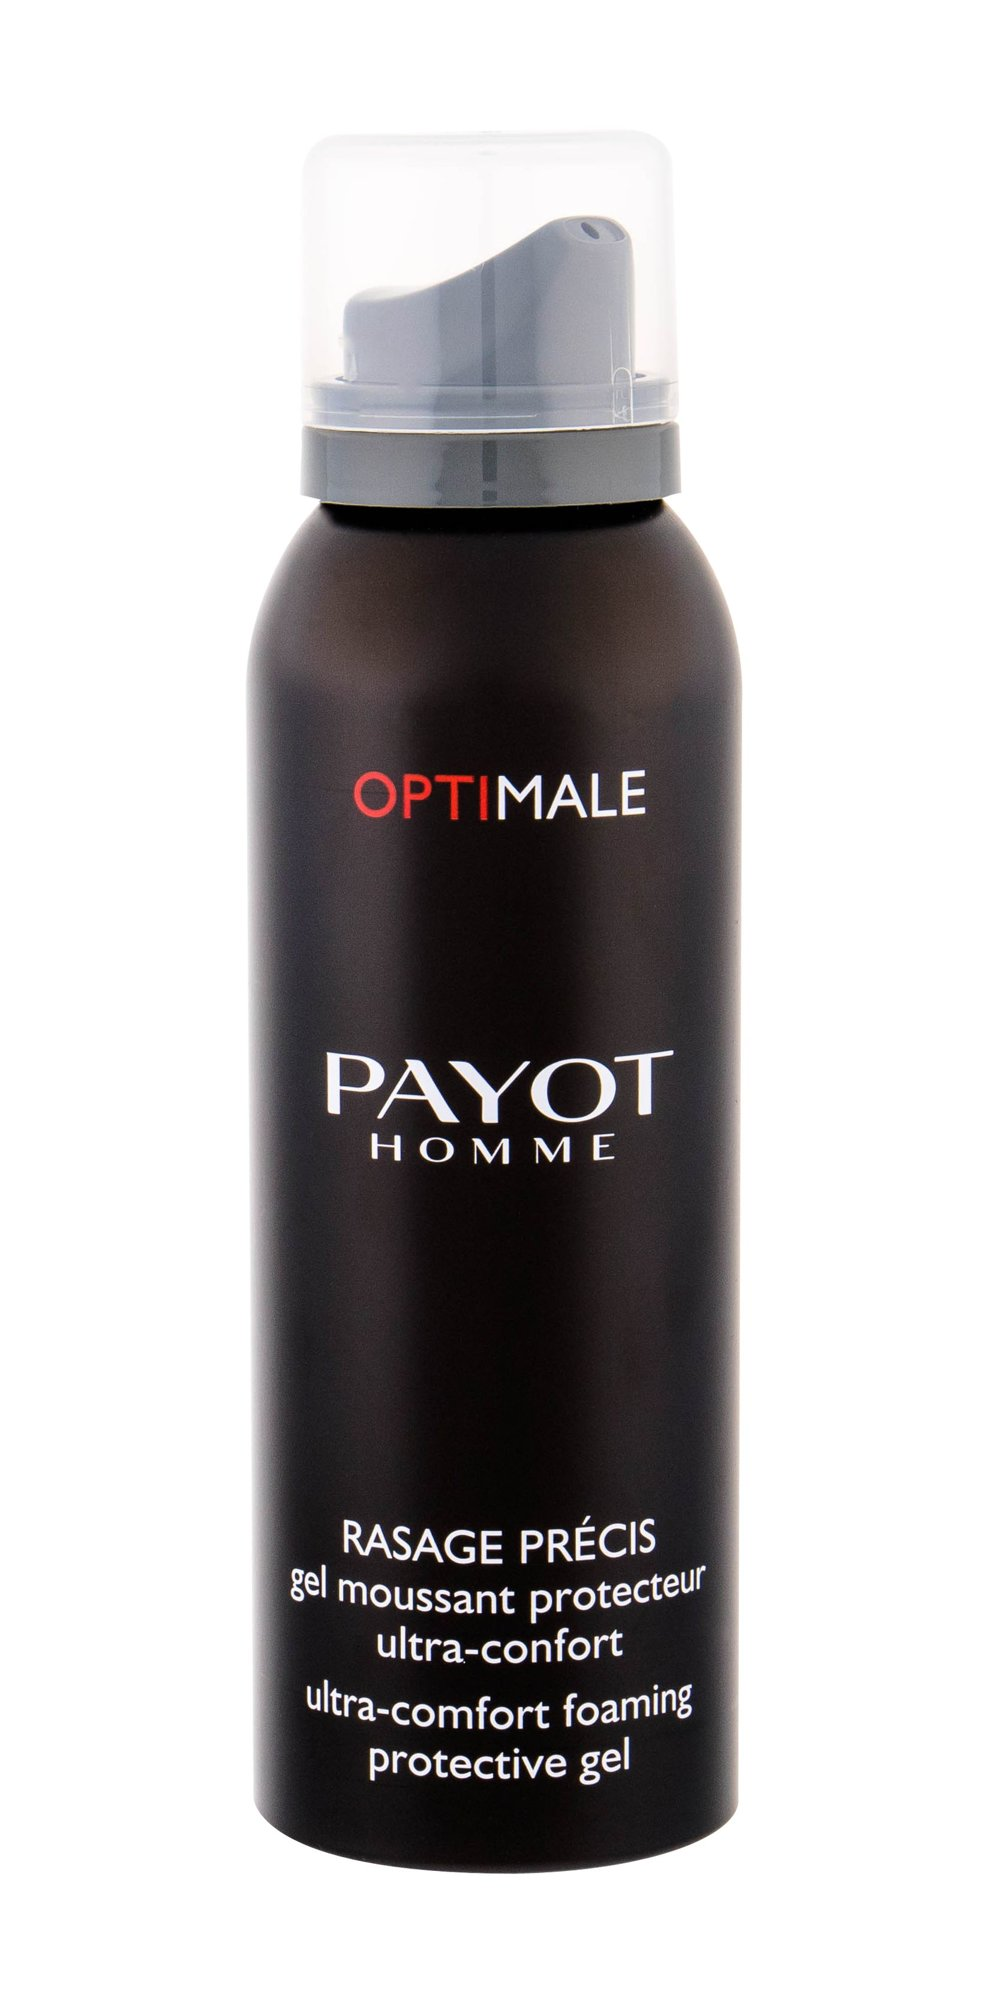 PAYOT Homme Optimale Shaving Gel 100ml